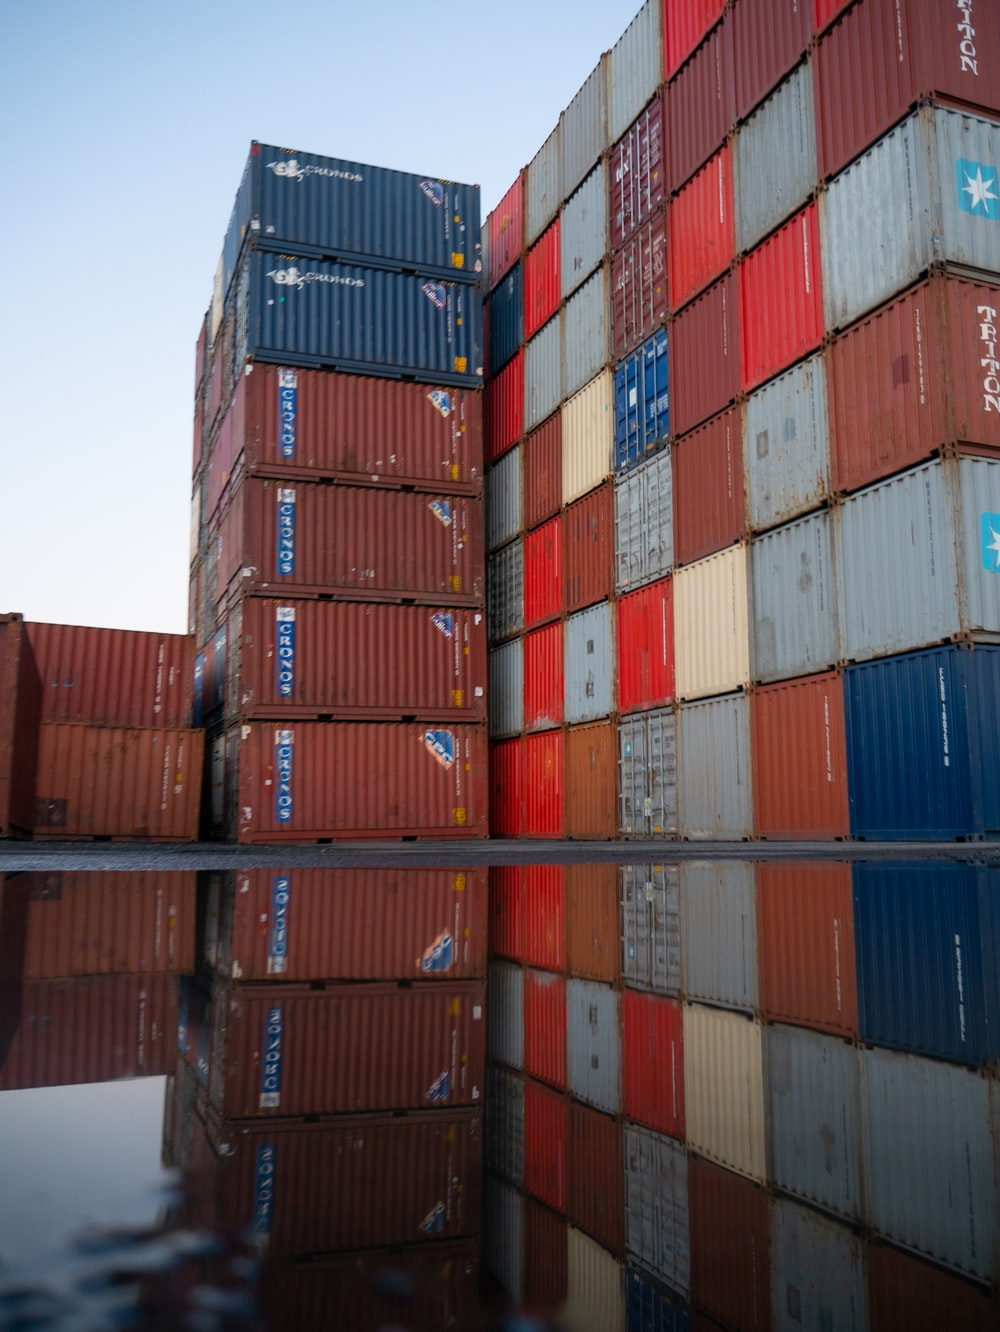 red blue and yellow intermodal containers